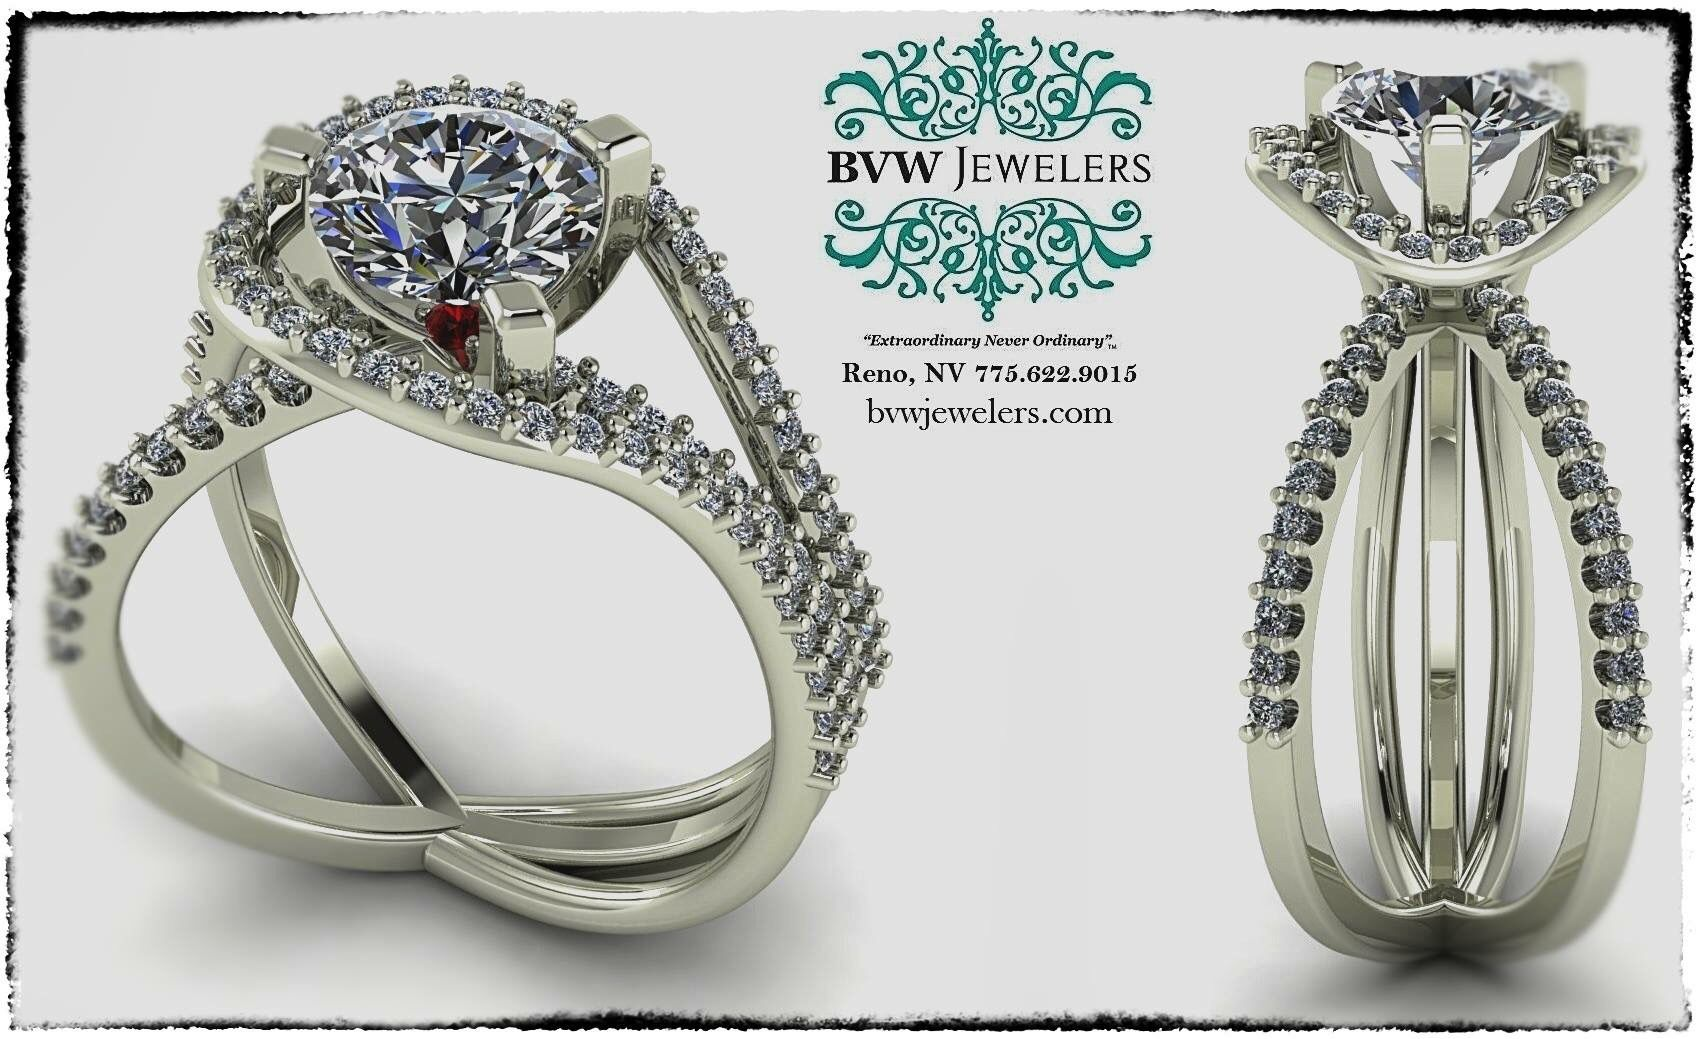 29+ Jewelry stores in carson city nevada ideas in 2021